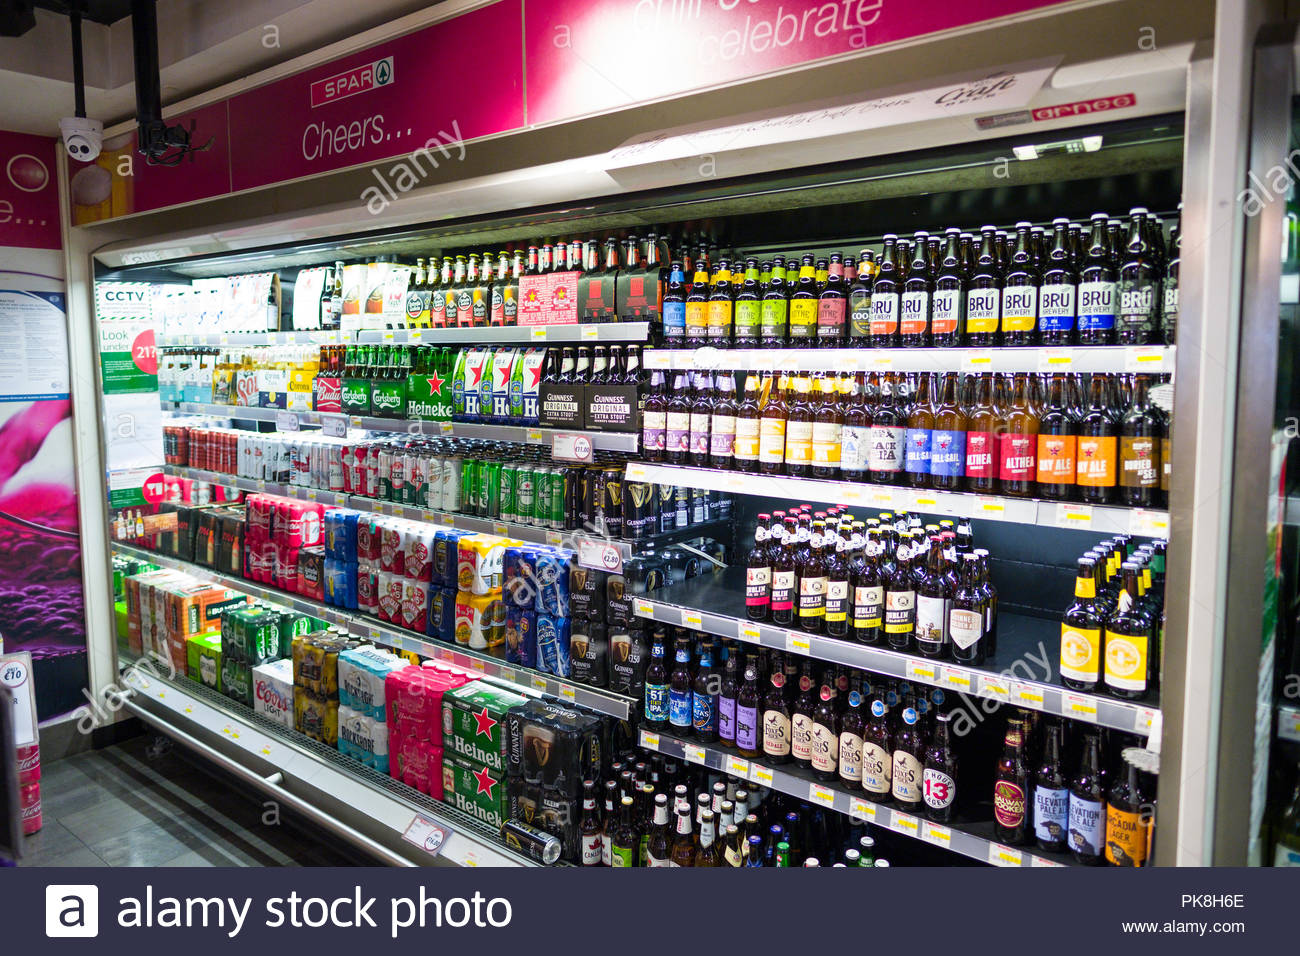 Large selection of refrigerated beer in bottles and aluminum cans on sale in Spar convenience retail shop, Merrion Row, Dublin, Leinster, Ireland - Stock Image